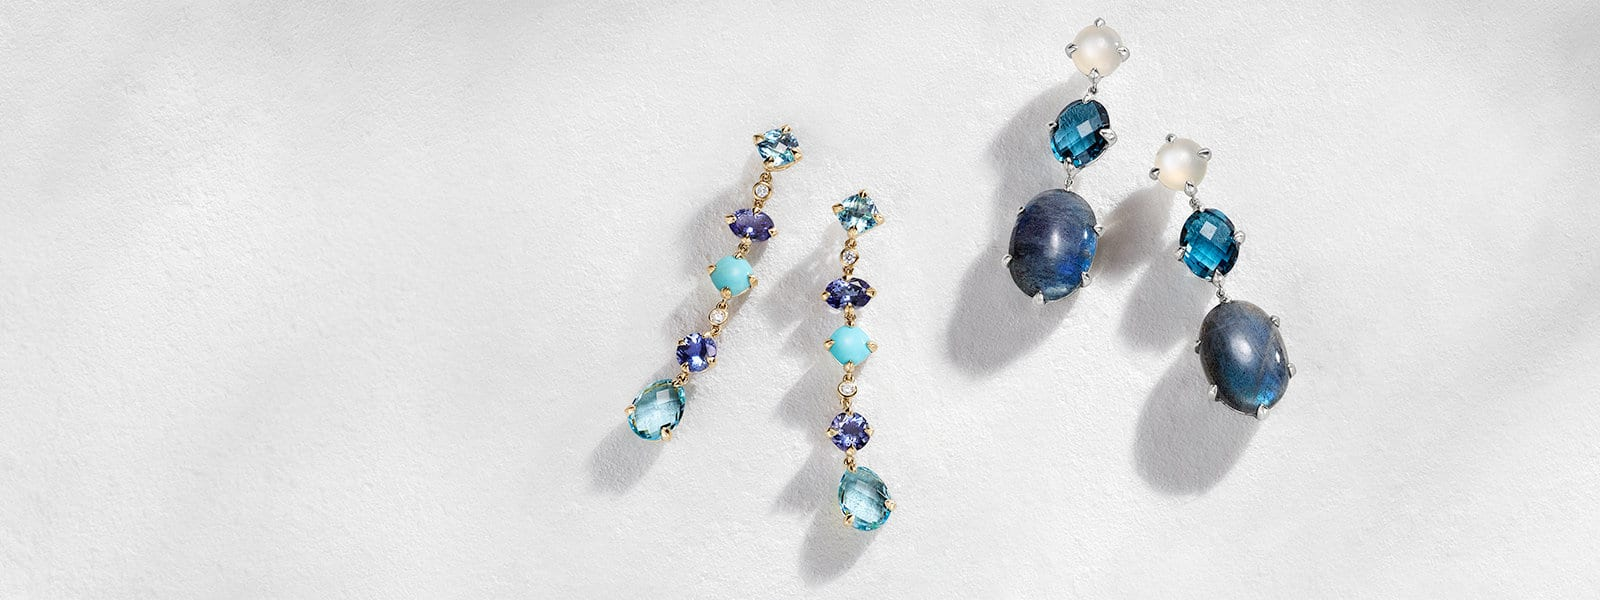 David Yurman Châtelaine drop earrings in 18K yellow gold with blue topaz, tanzanite, turquoise and diamonds or in sterling silver with labradorite, Hampton blue topaz and white moonstone on a white textured stone with long shadows.